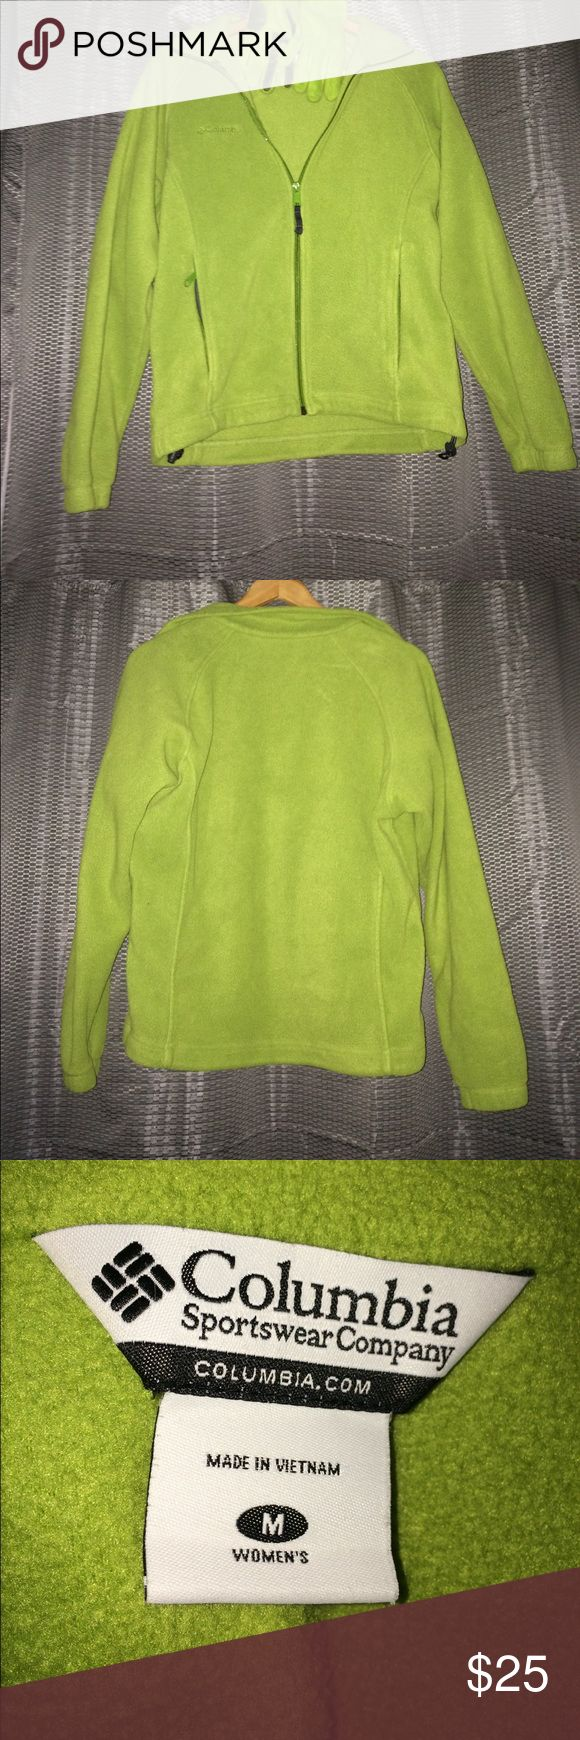 Columbia jacket and green gloves Columbia green zippered jacket and green thinsulate gloves. Please ask questions. Columbia Jackets & Coats